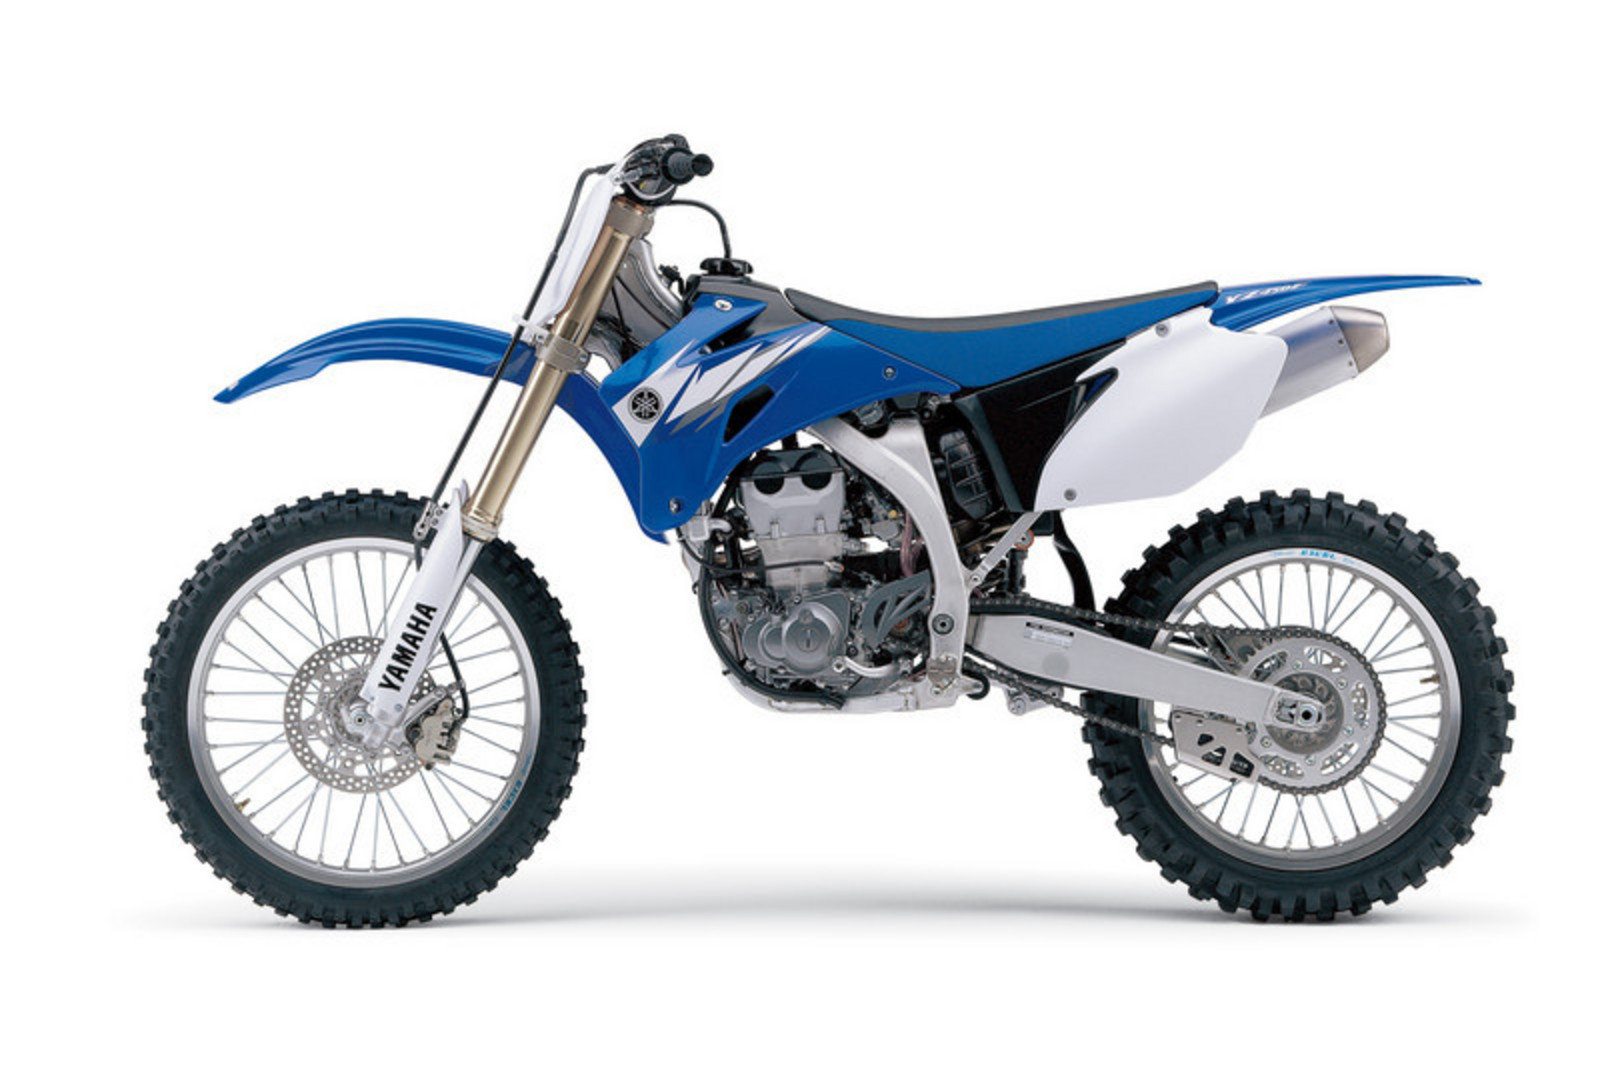 2006 Yamaha PW 80 Reviews, Prices, and Specs